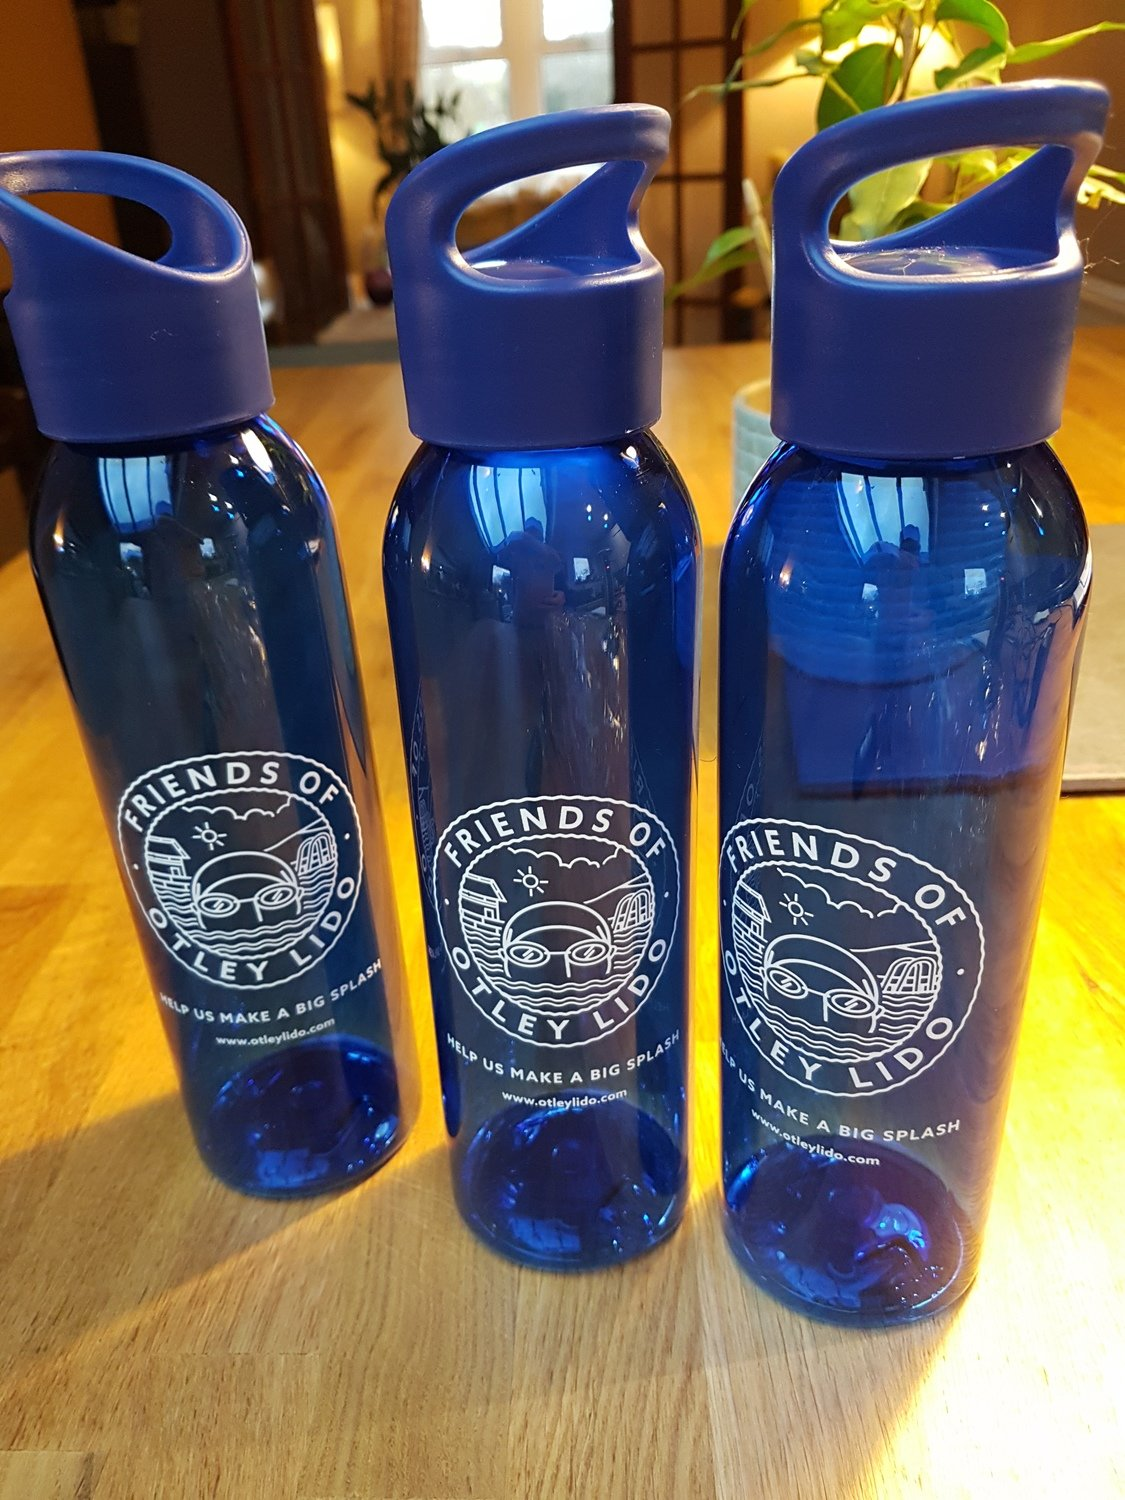 Blue 'Otley Lido' Eco Friendly Drinks Bottles